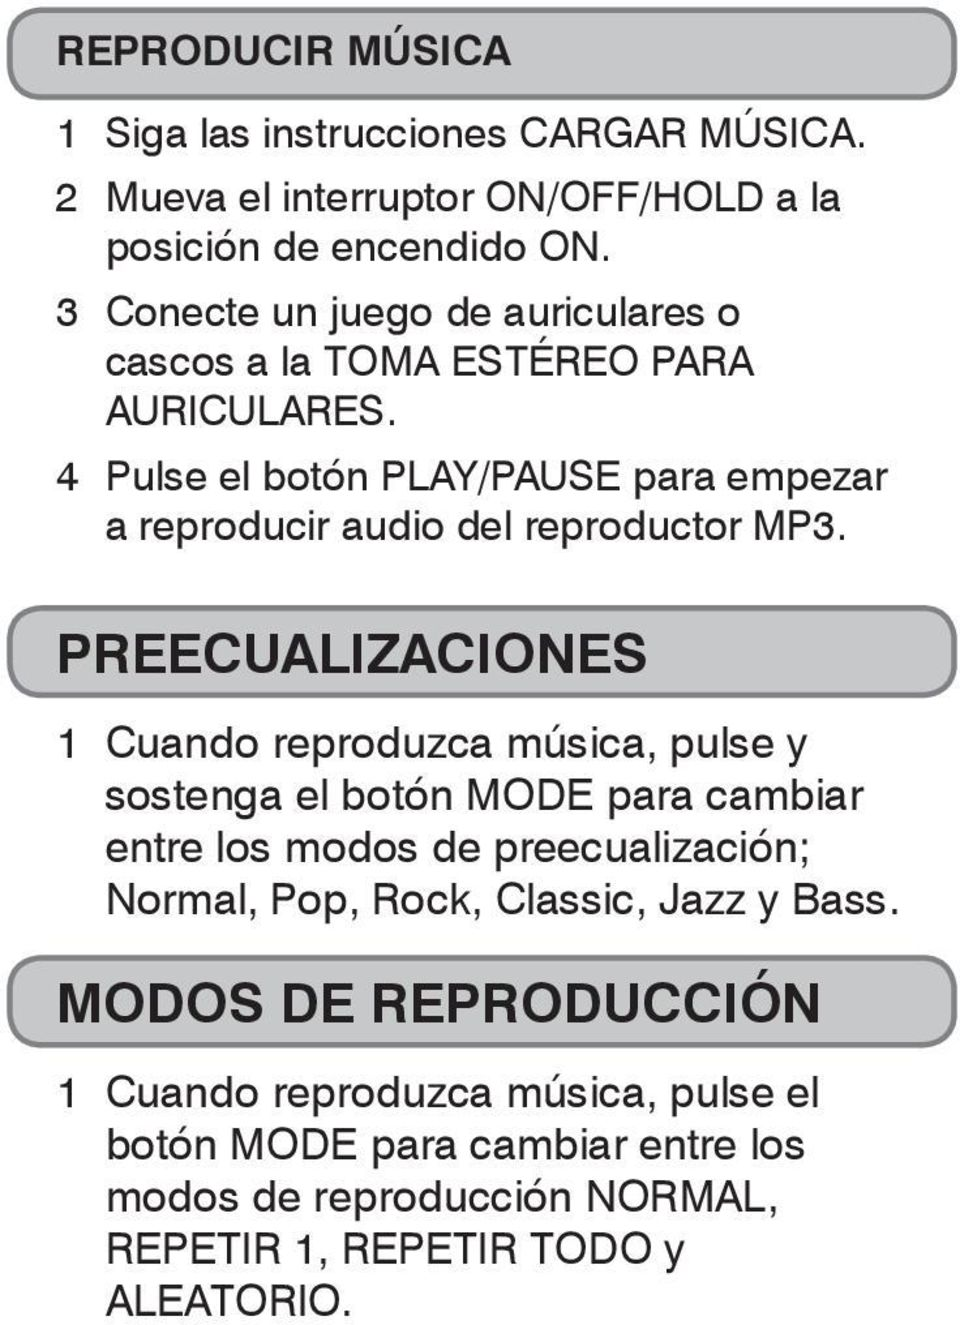 4 Pulse el botón PLAY/PAUSE para empezar a reproducir audio del reproductor MP3.